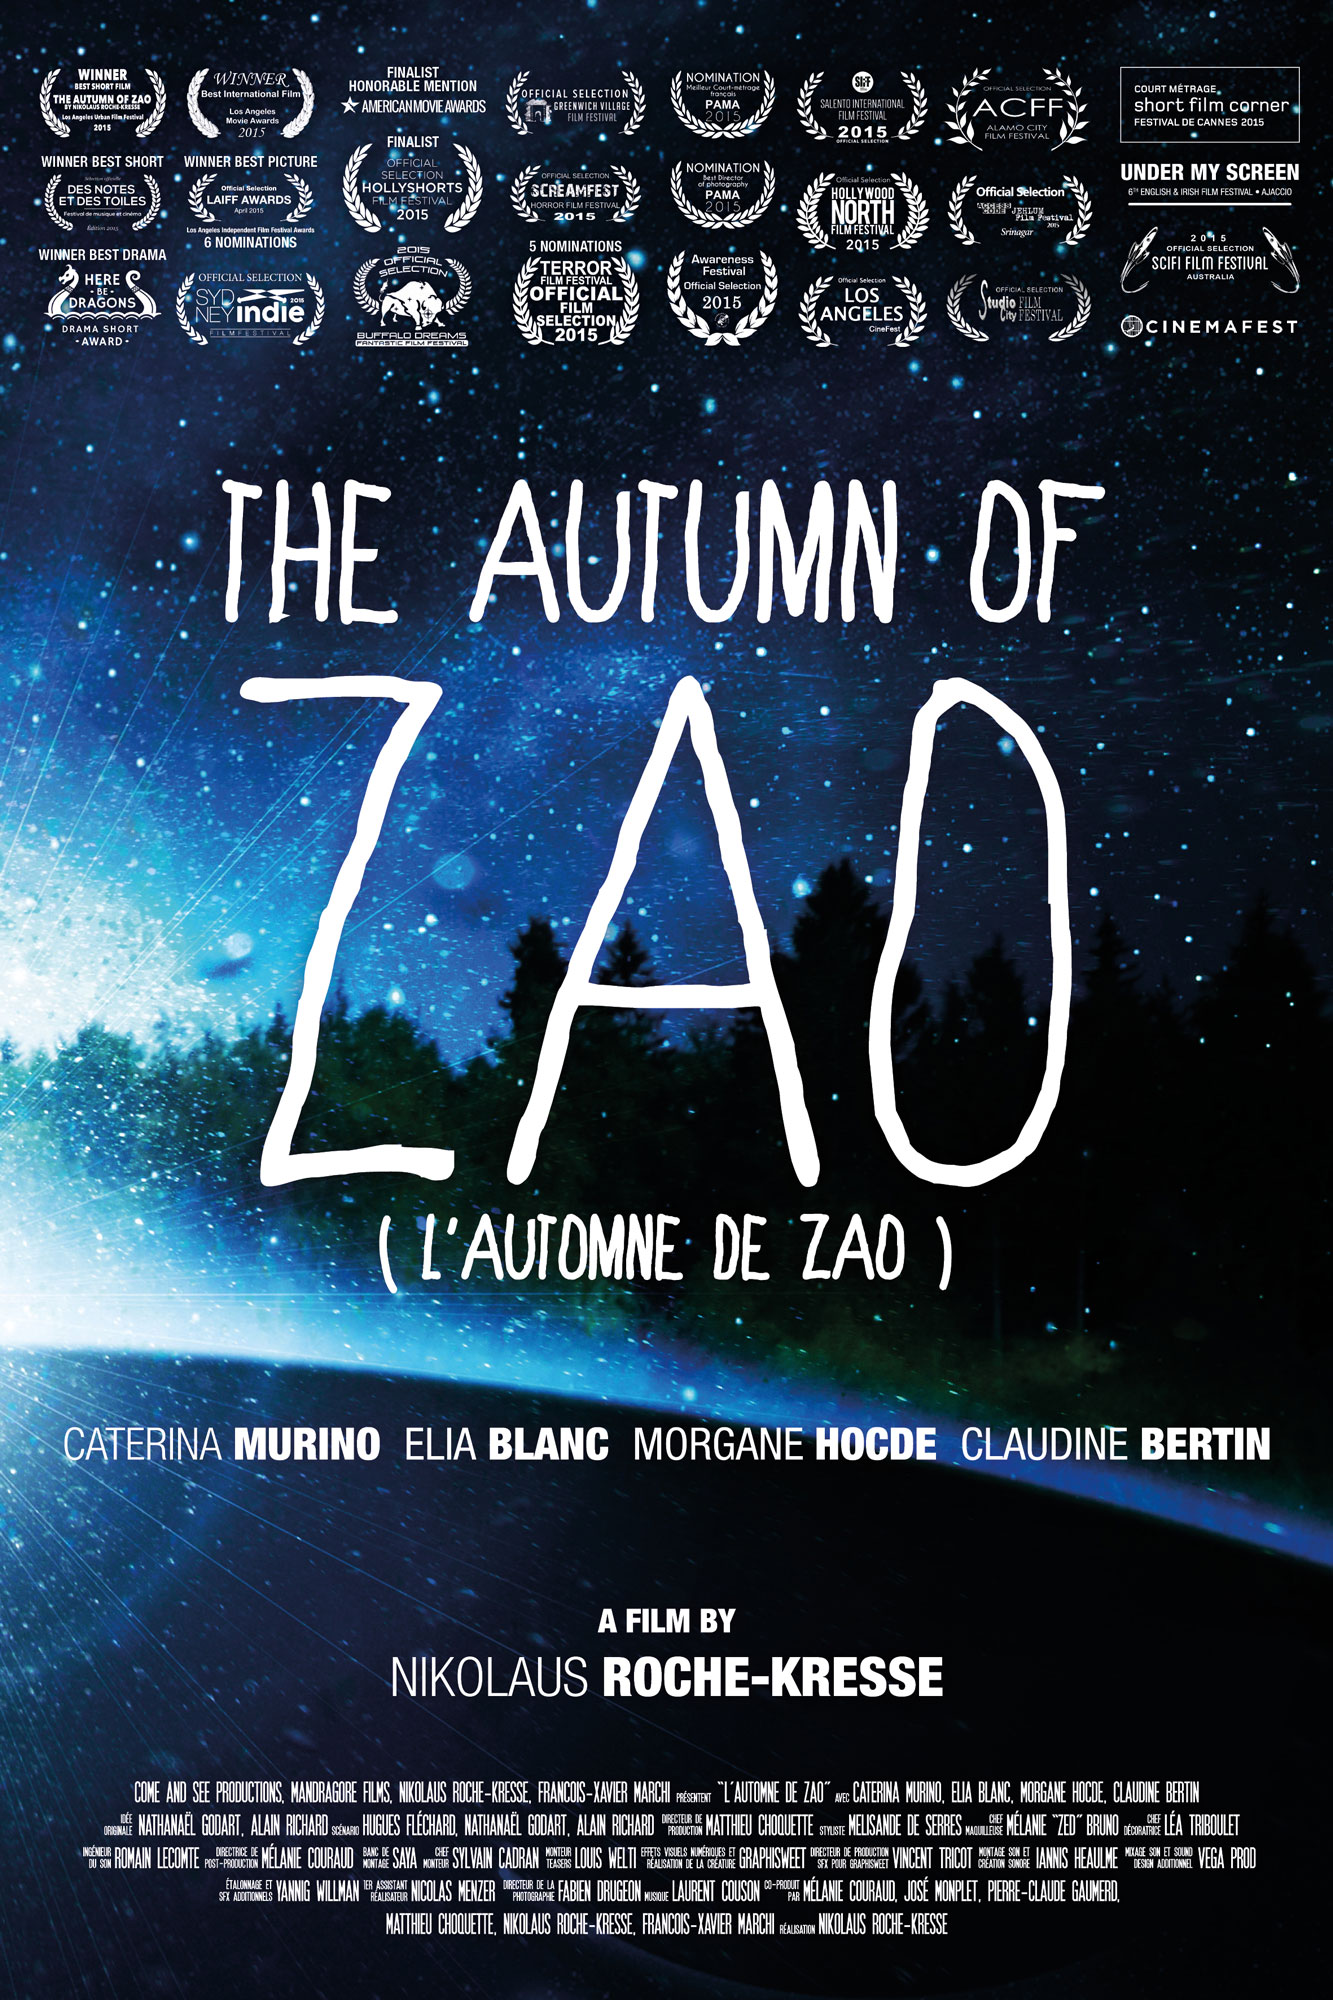 THE AUTUMN OF ZAO poster